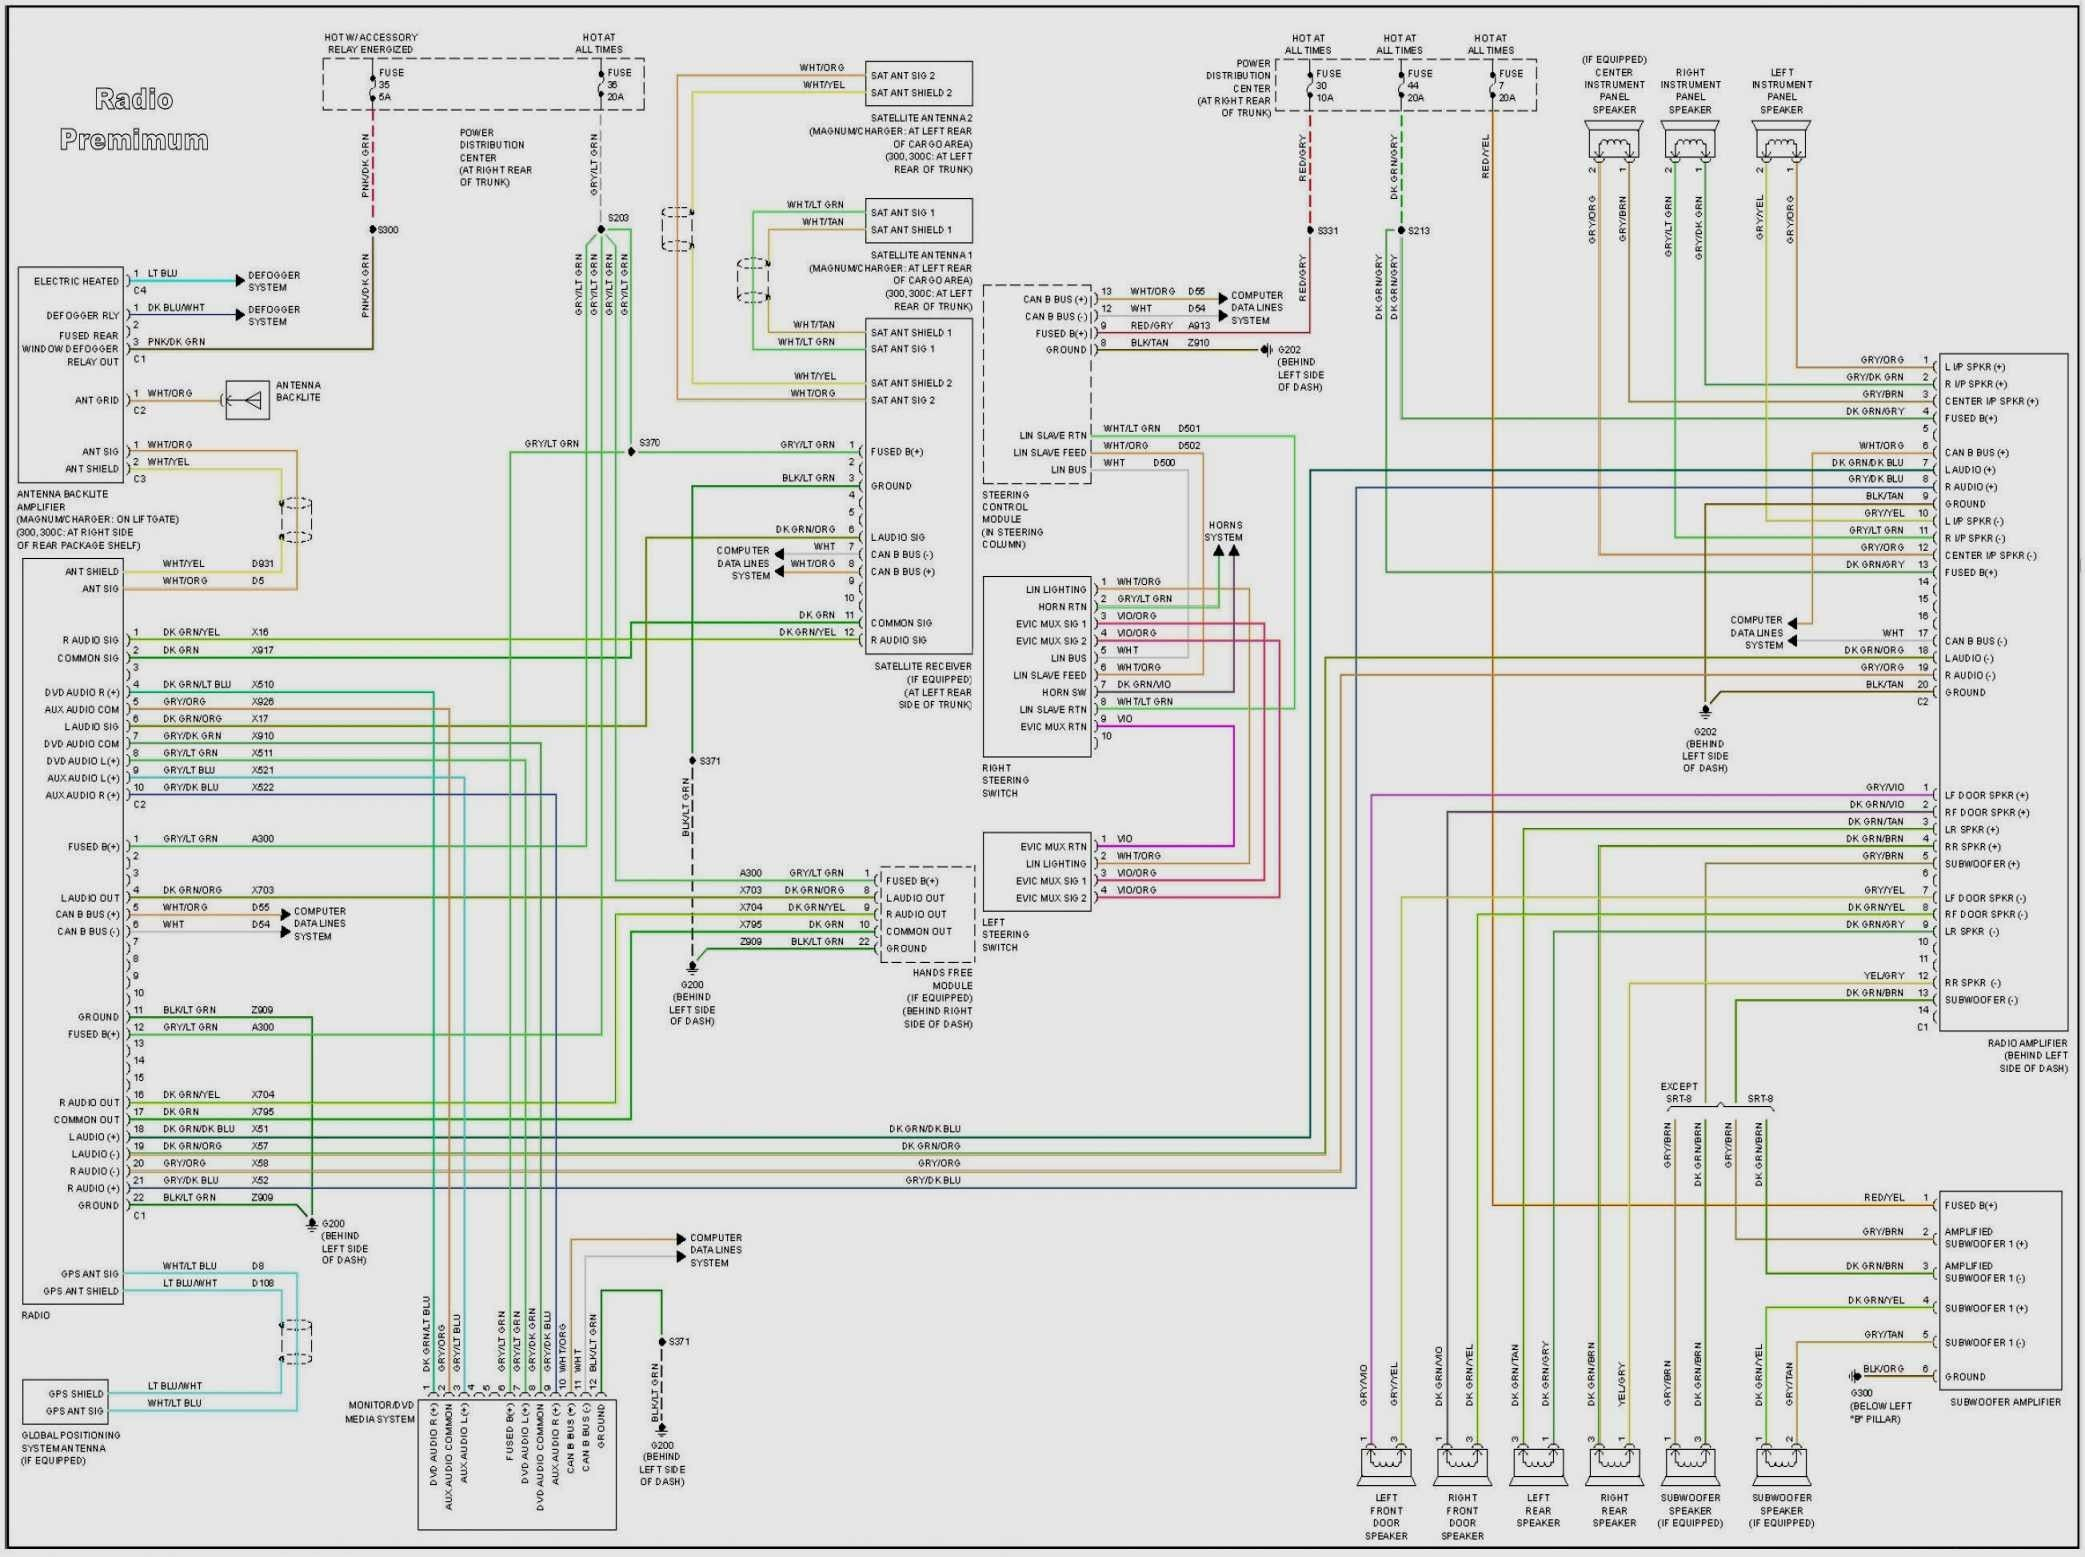 DIAGRAM] 2012 Ram Ke Controler Wiring Diagram FULL Version HD Quality Wiring  Diagram - DIAGRAM-EX.ARTEMISMAIL.FRdiagram-ex.artemismail.fr